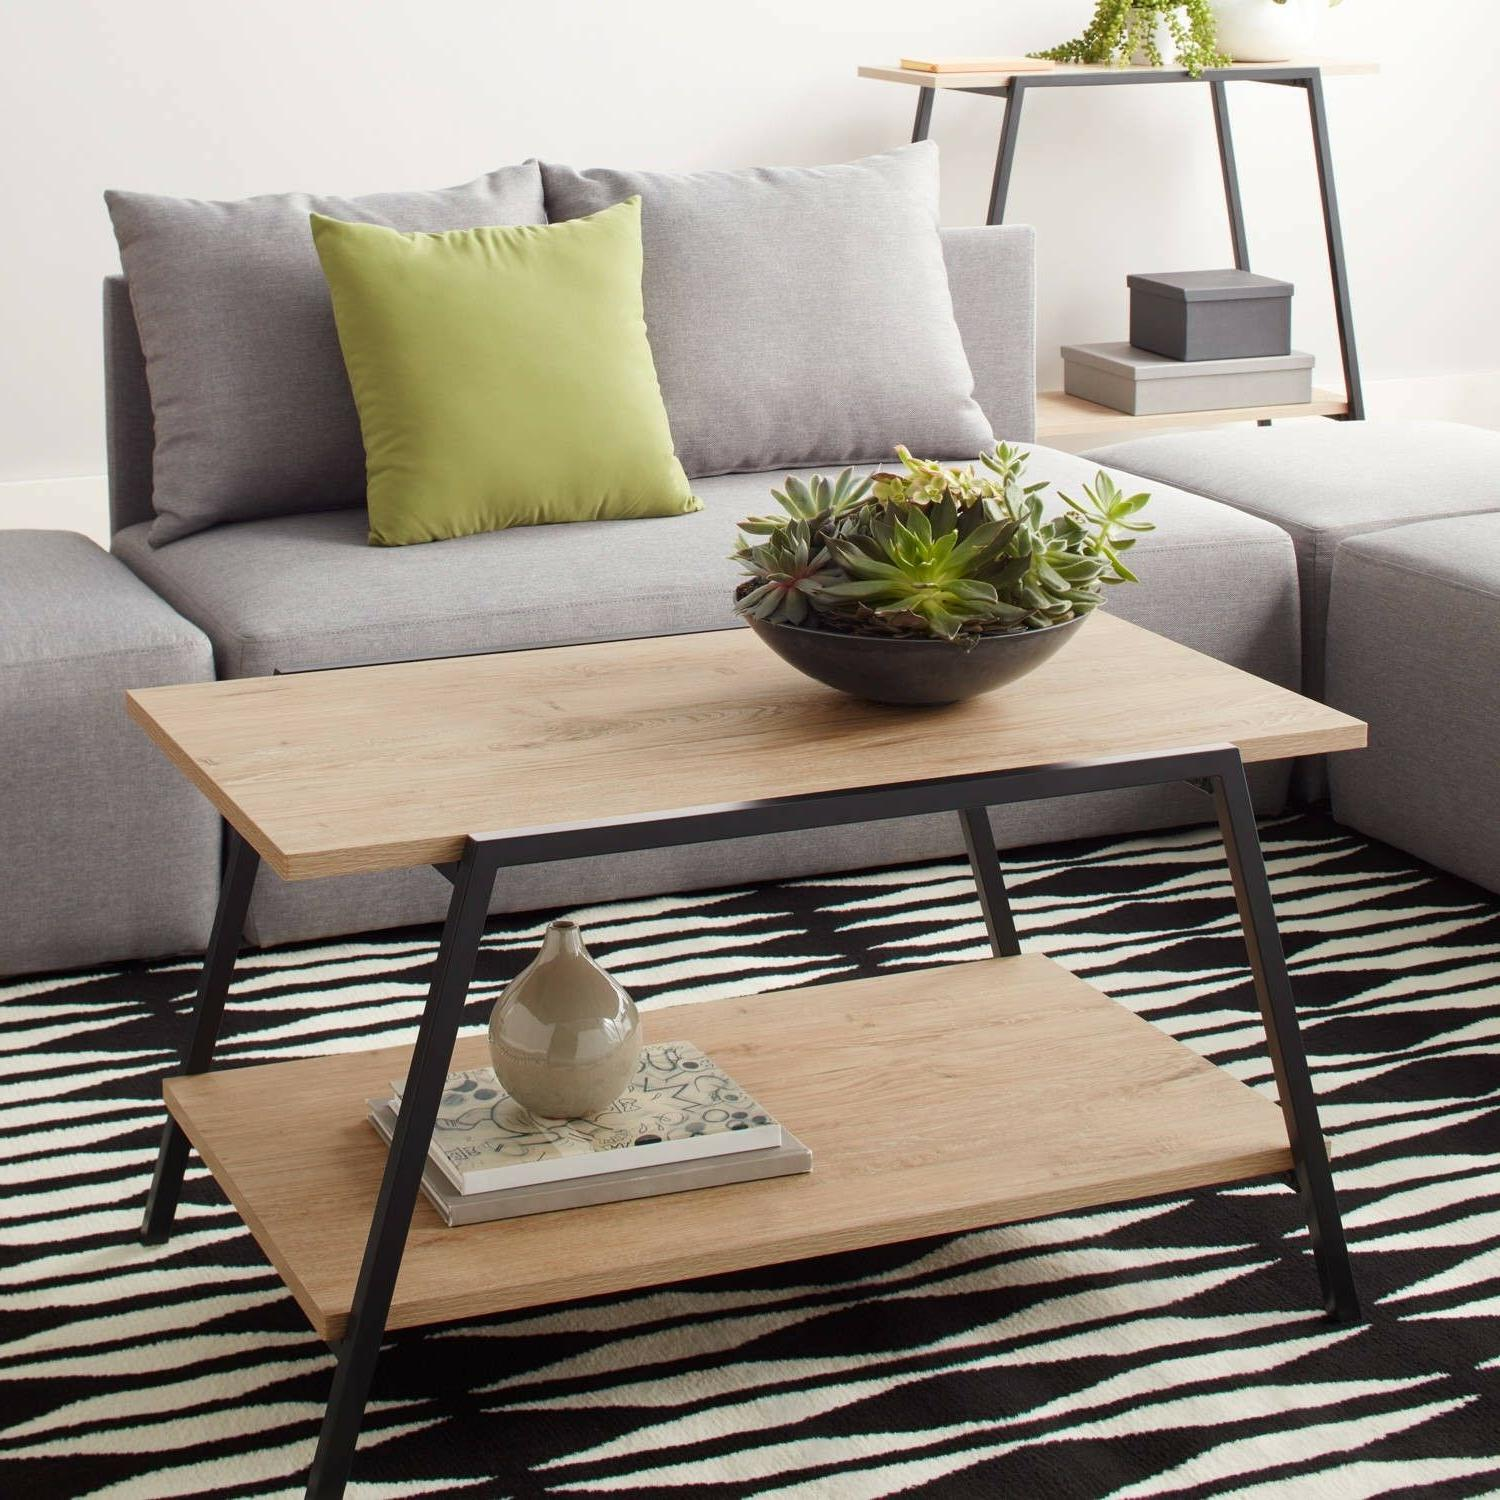 Mainstays Conrad Coffee Table Black Frame Wood for Modern Li